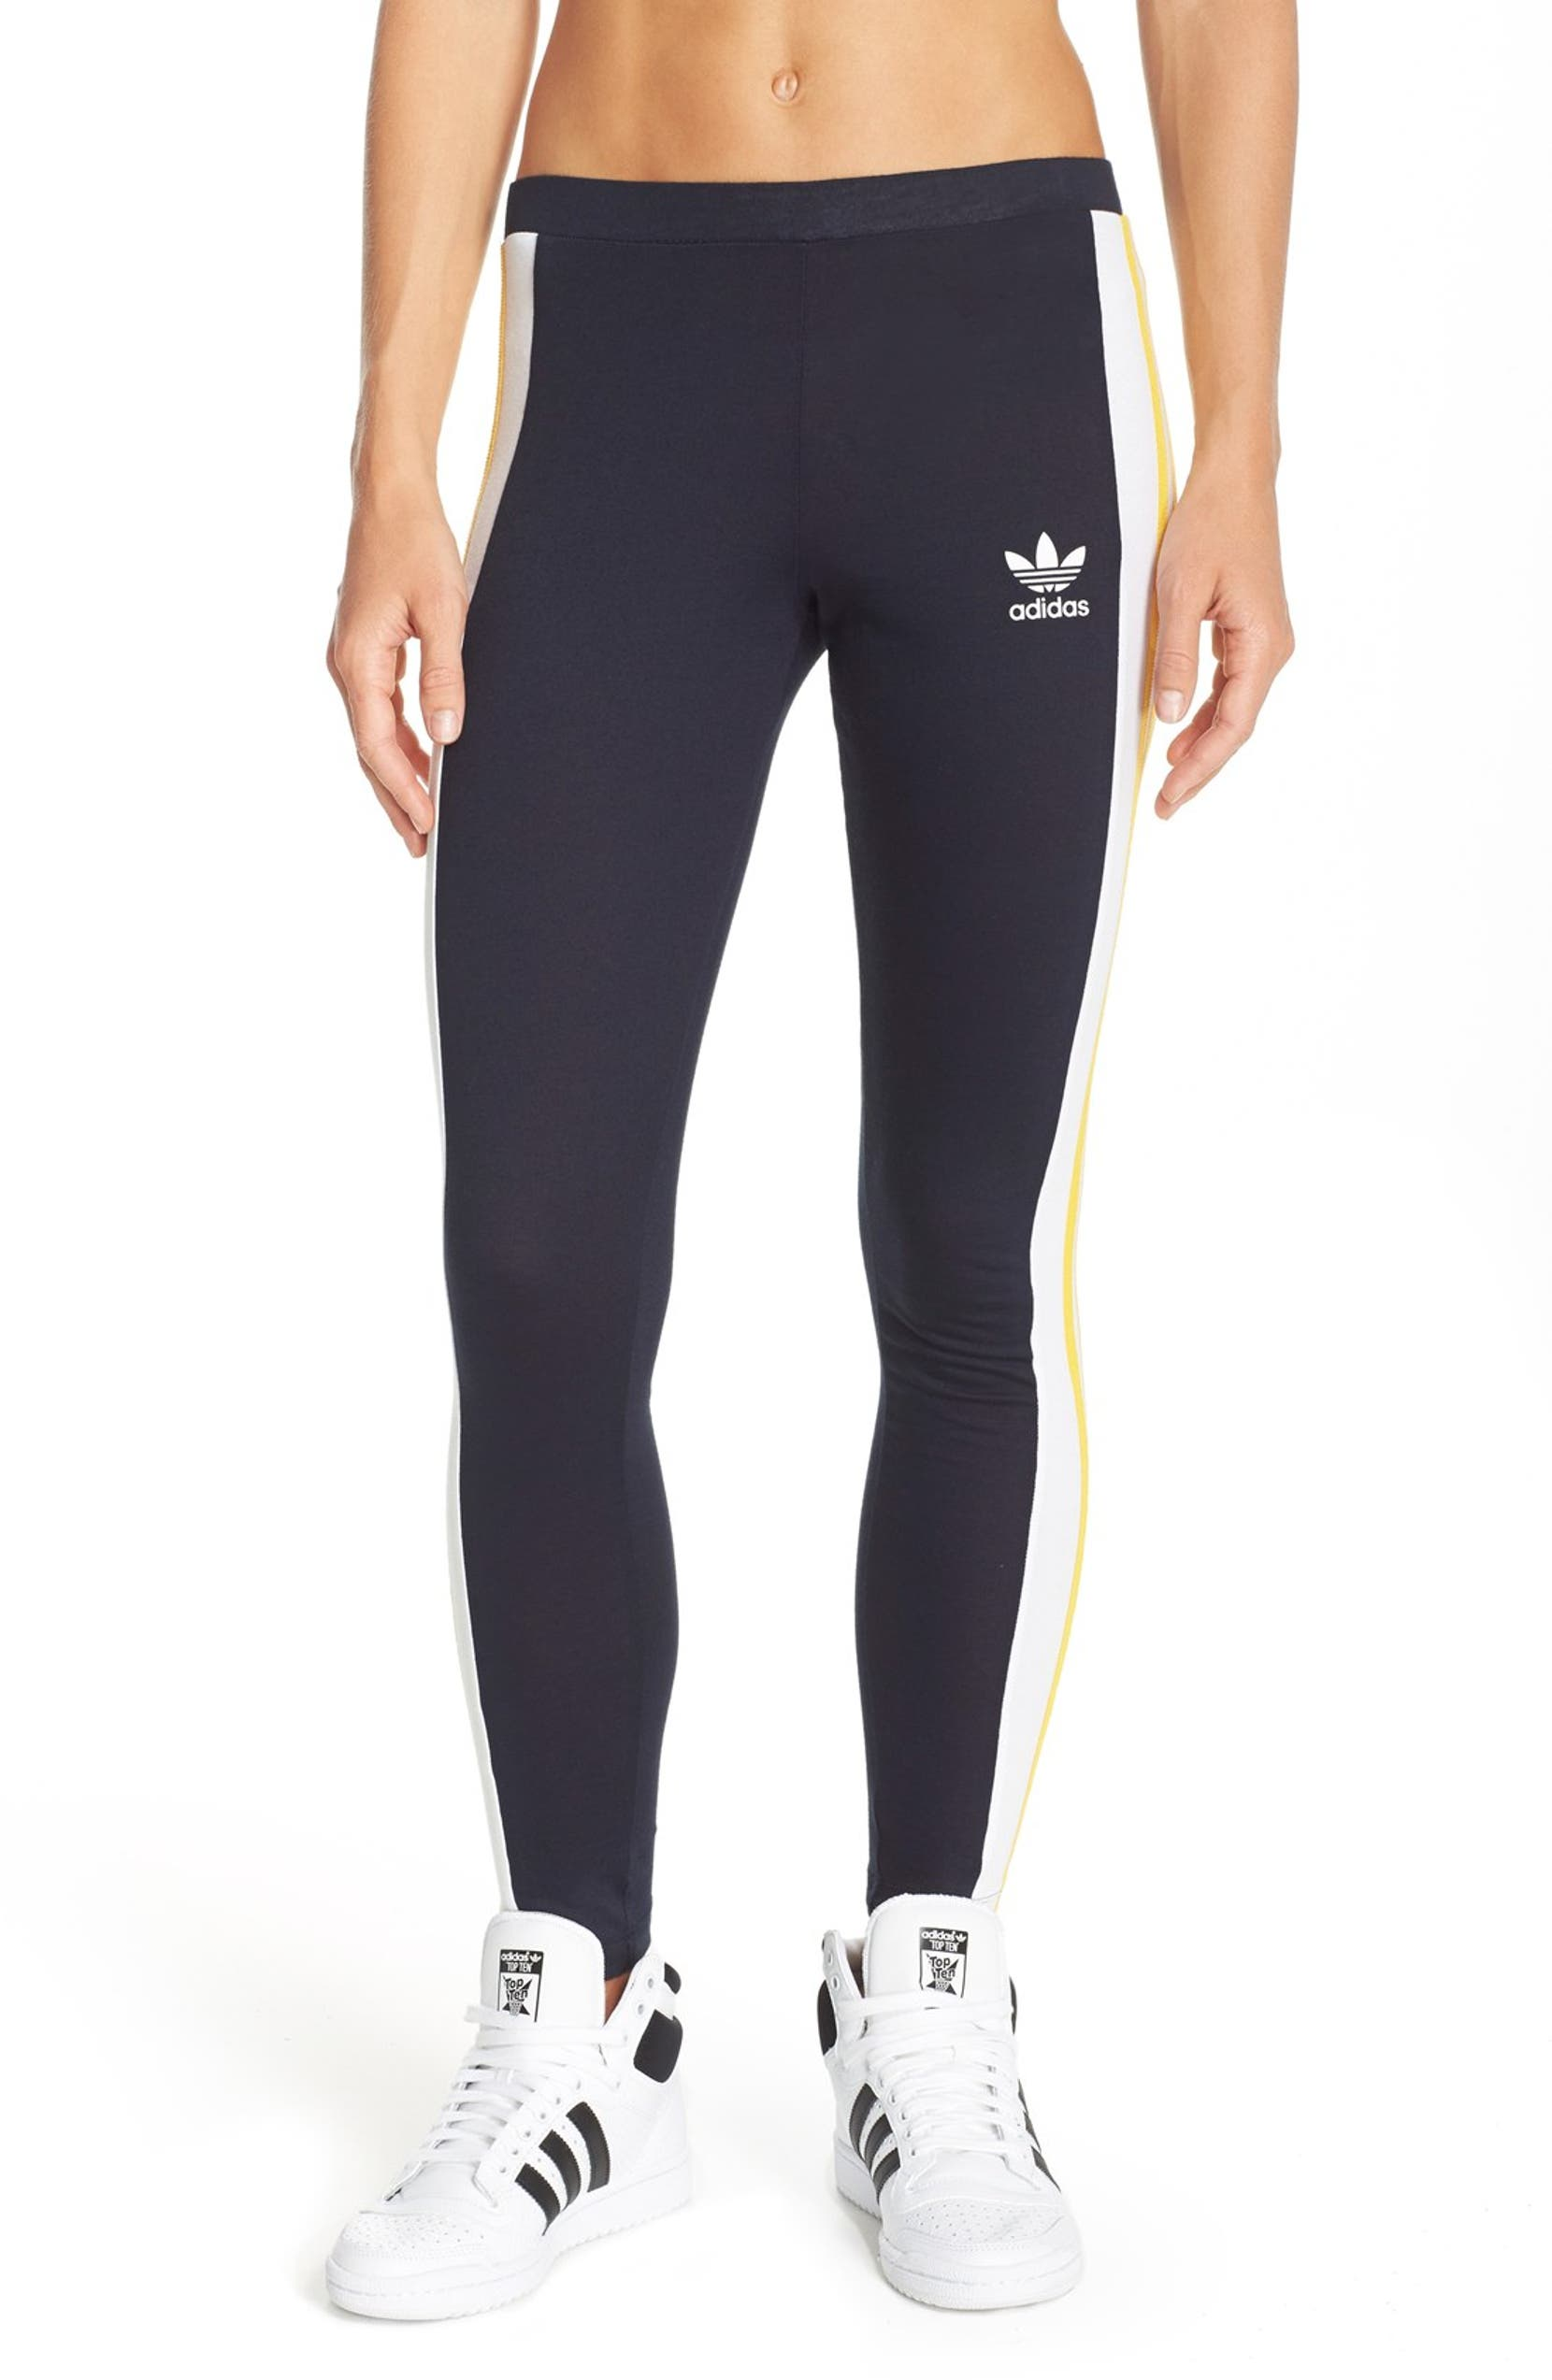 9c98e0558f527 adidas Originals 'Cosmic Confession' Leggings | Nordstrom